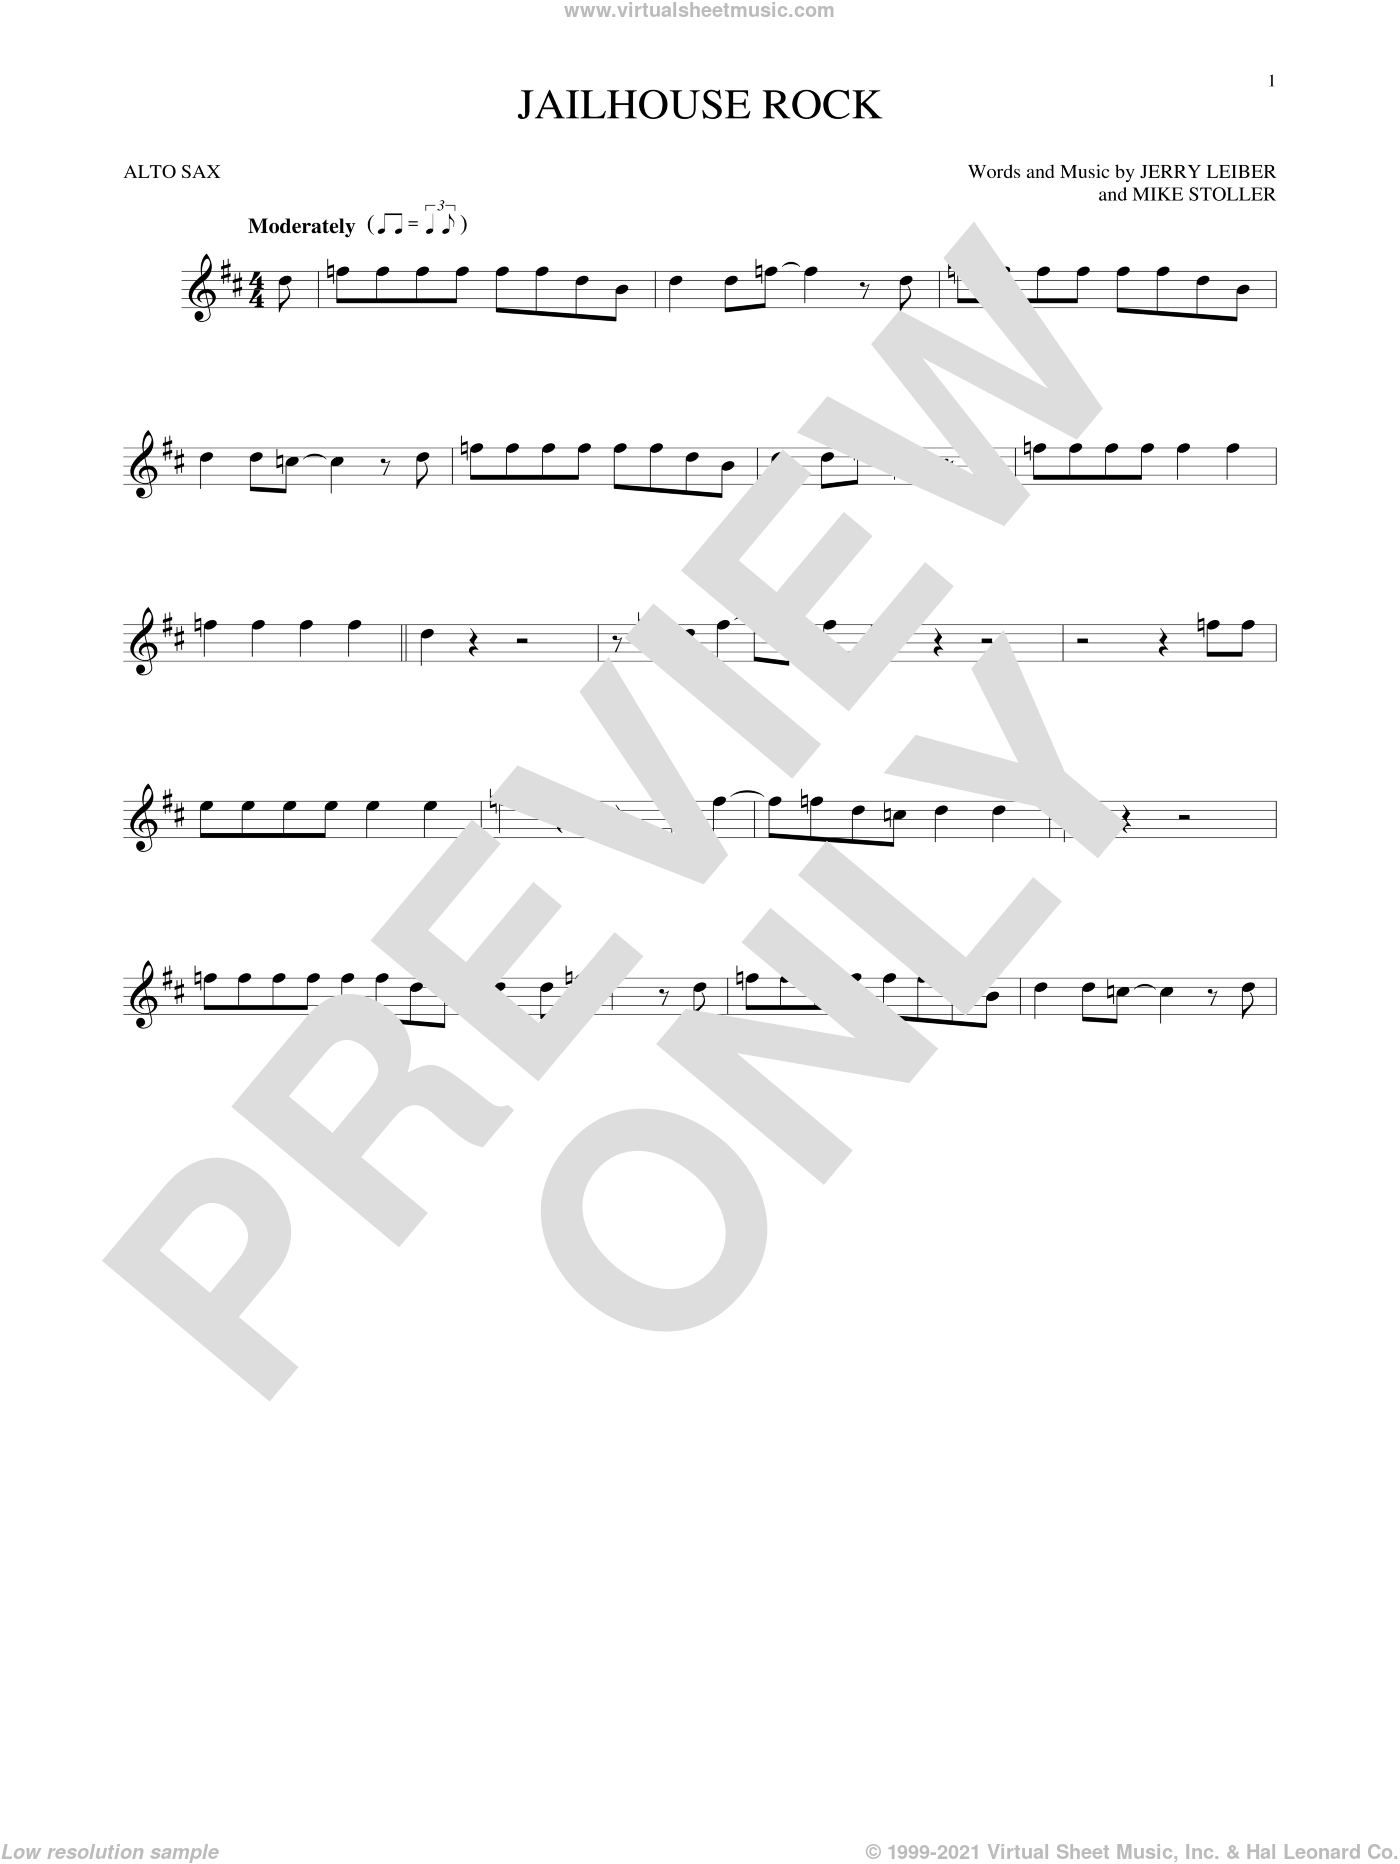 Jailhouse Rock sheet music for alto saxophone solo by Elvis Presley, Jerry Leiber and Mike Stoller, intermediate skill level